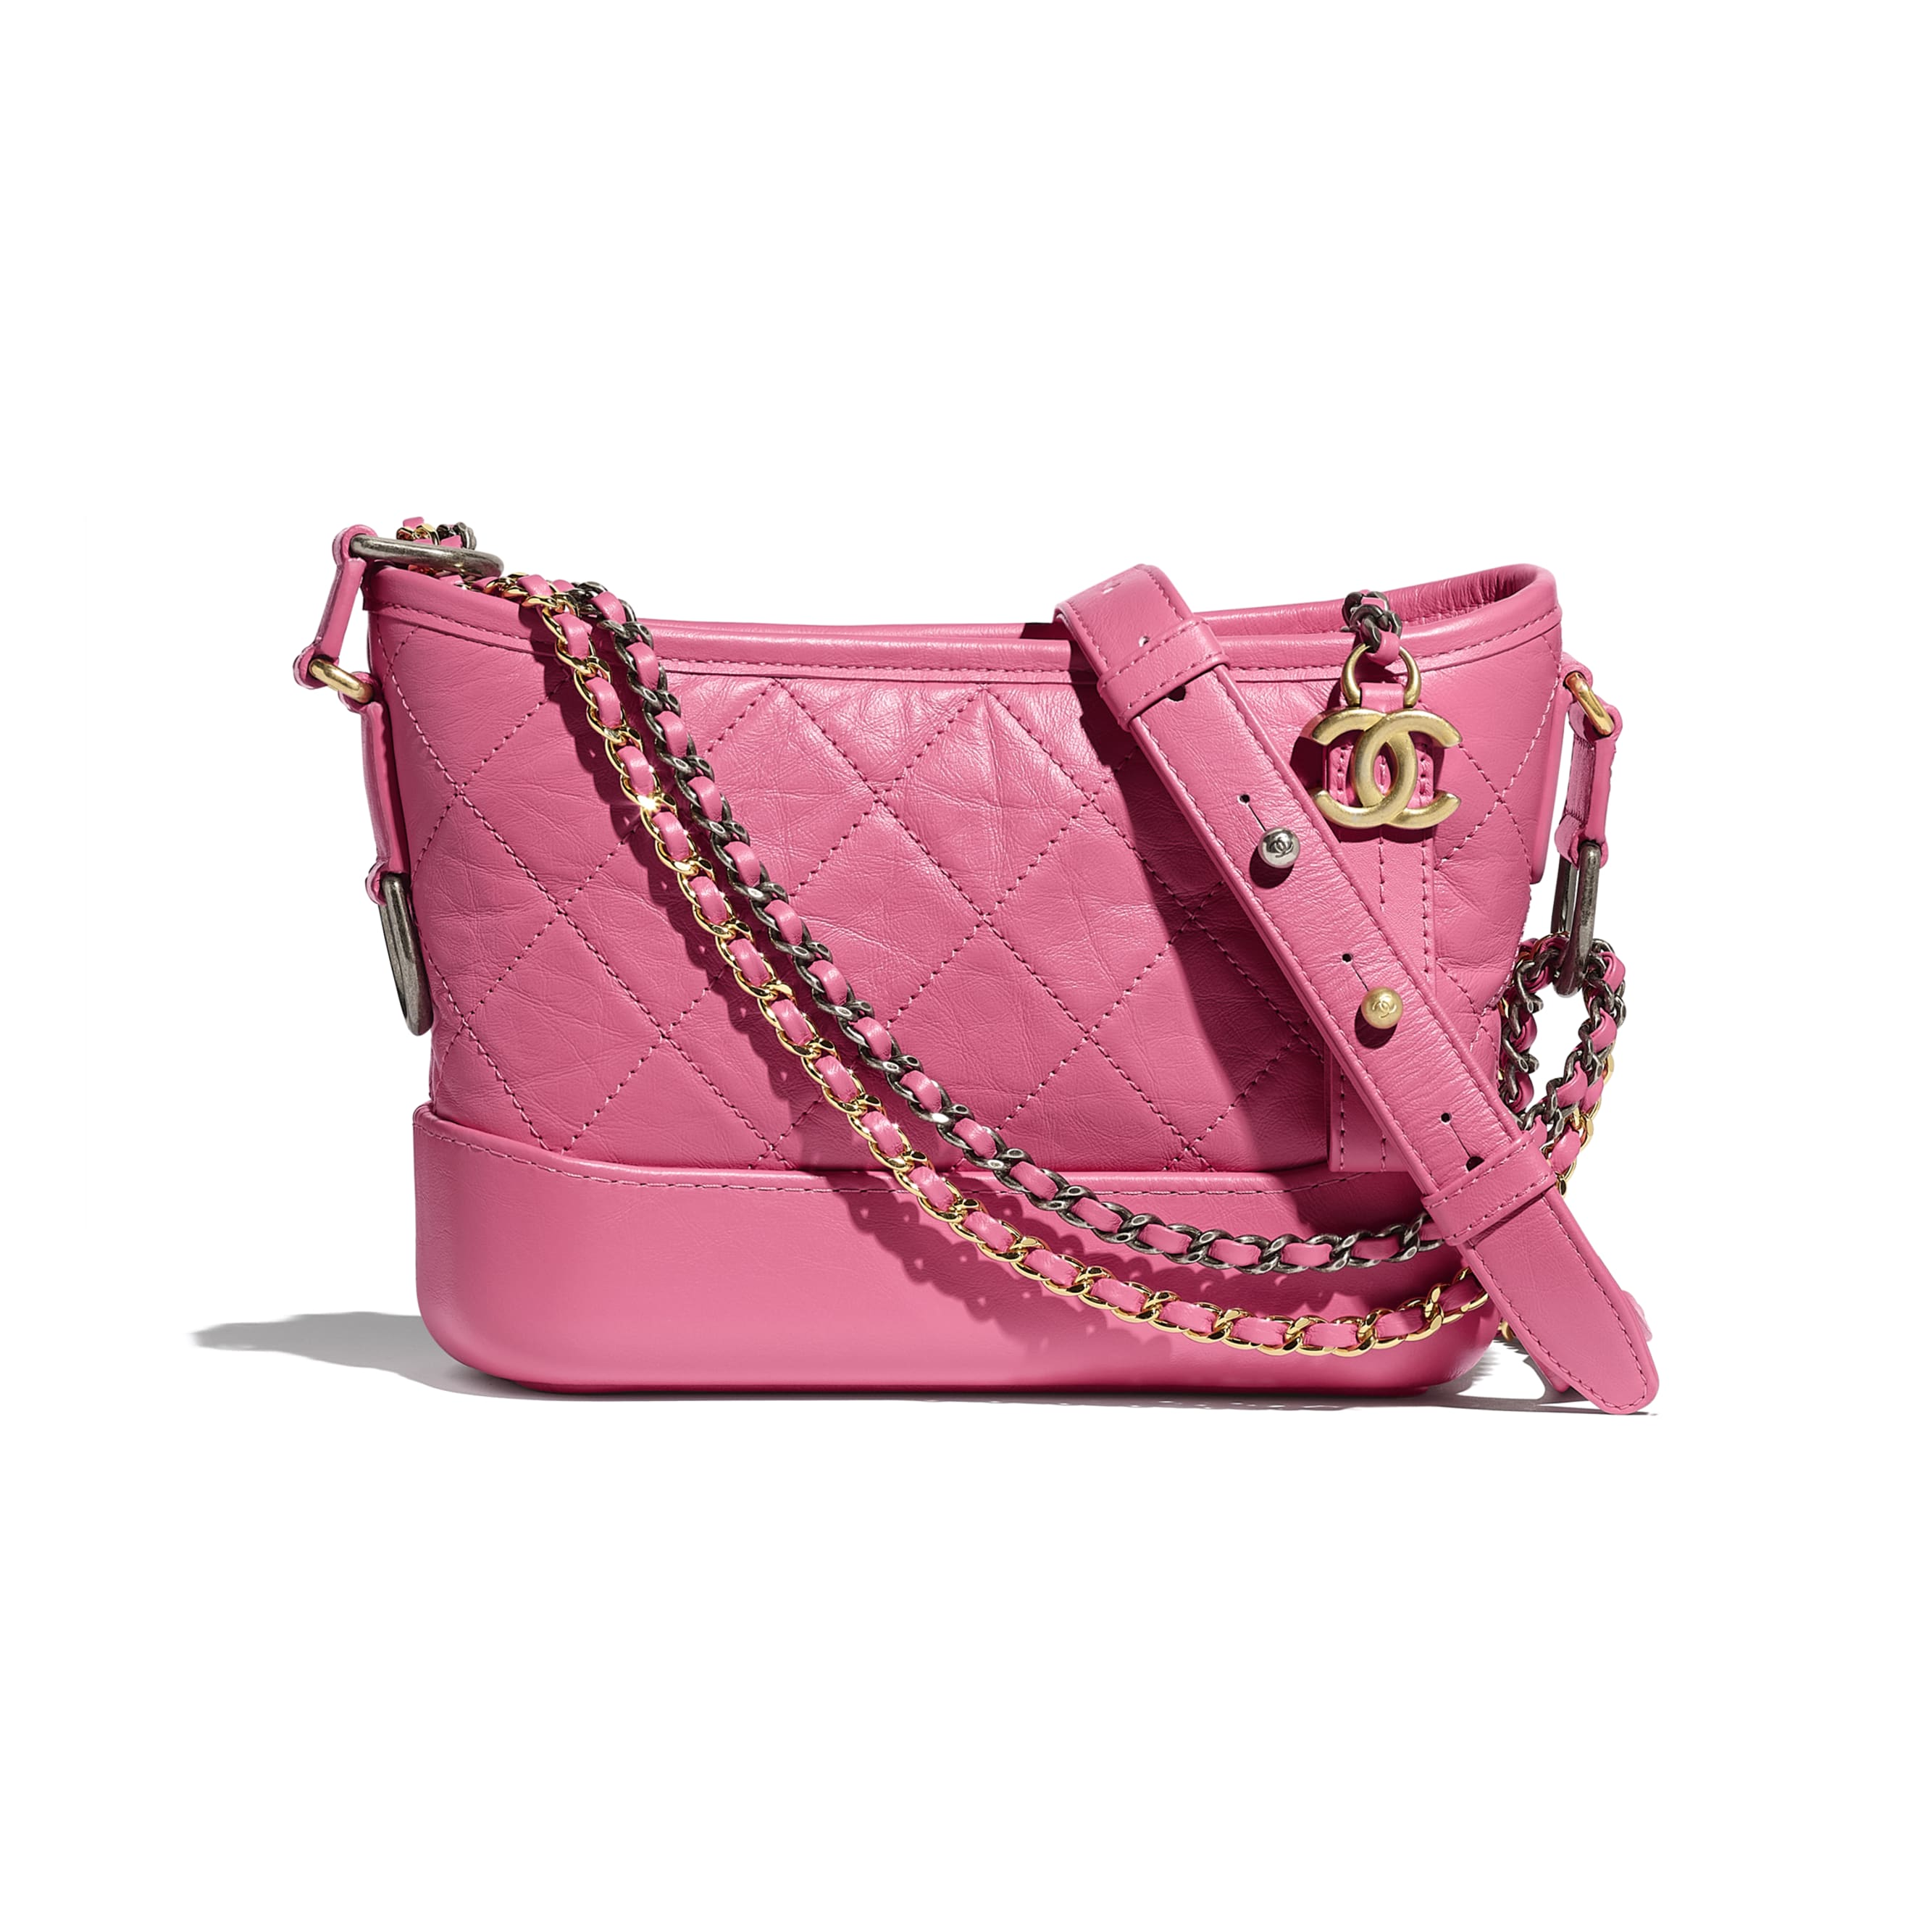 CHANEL'S GABRIELLE Small Hobo Bag - Pink - Aged Calfskin, Smooth Calfskin, Gold-Tone, Silver-Tone & Ruthenium-Finish Metal - CHANEL - Default view - see standard sized version